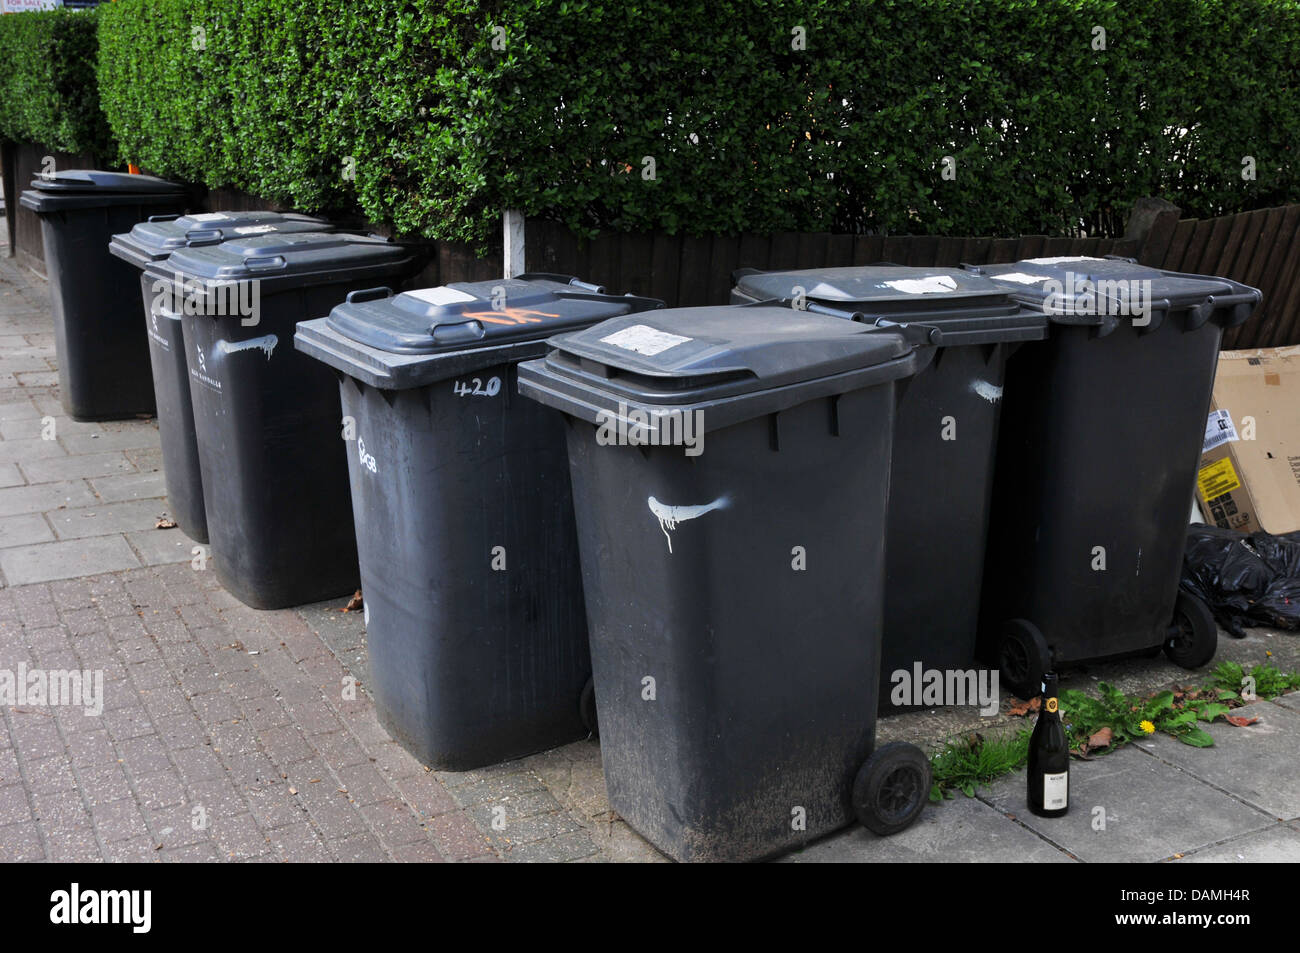 Group of black rubbish bins together, in street, awaiting collection, London - Stock Image